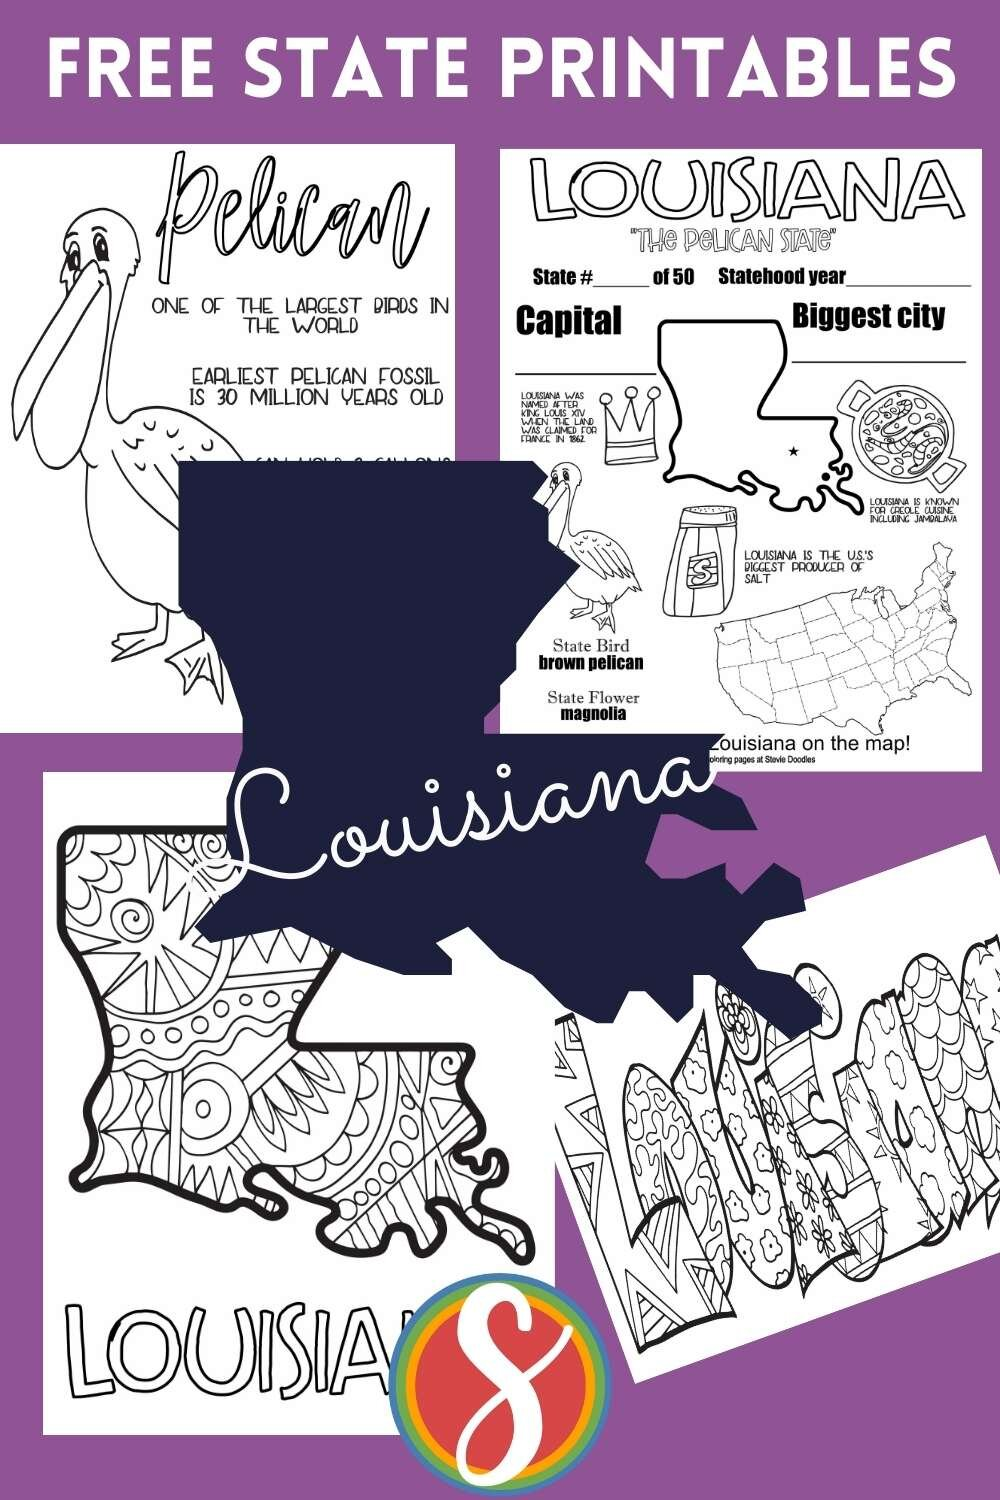 Louisiana! This state is part of my collection of all U.S. states coloring pages - I have 4 free coloring sheet printables for each of the 50 states in the US. Come visit Stevie Doodles for 1000's of free educational coloring pages